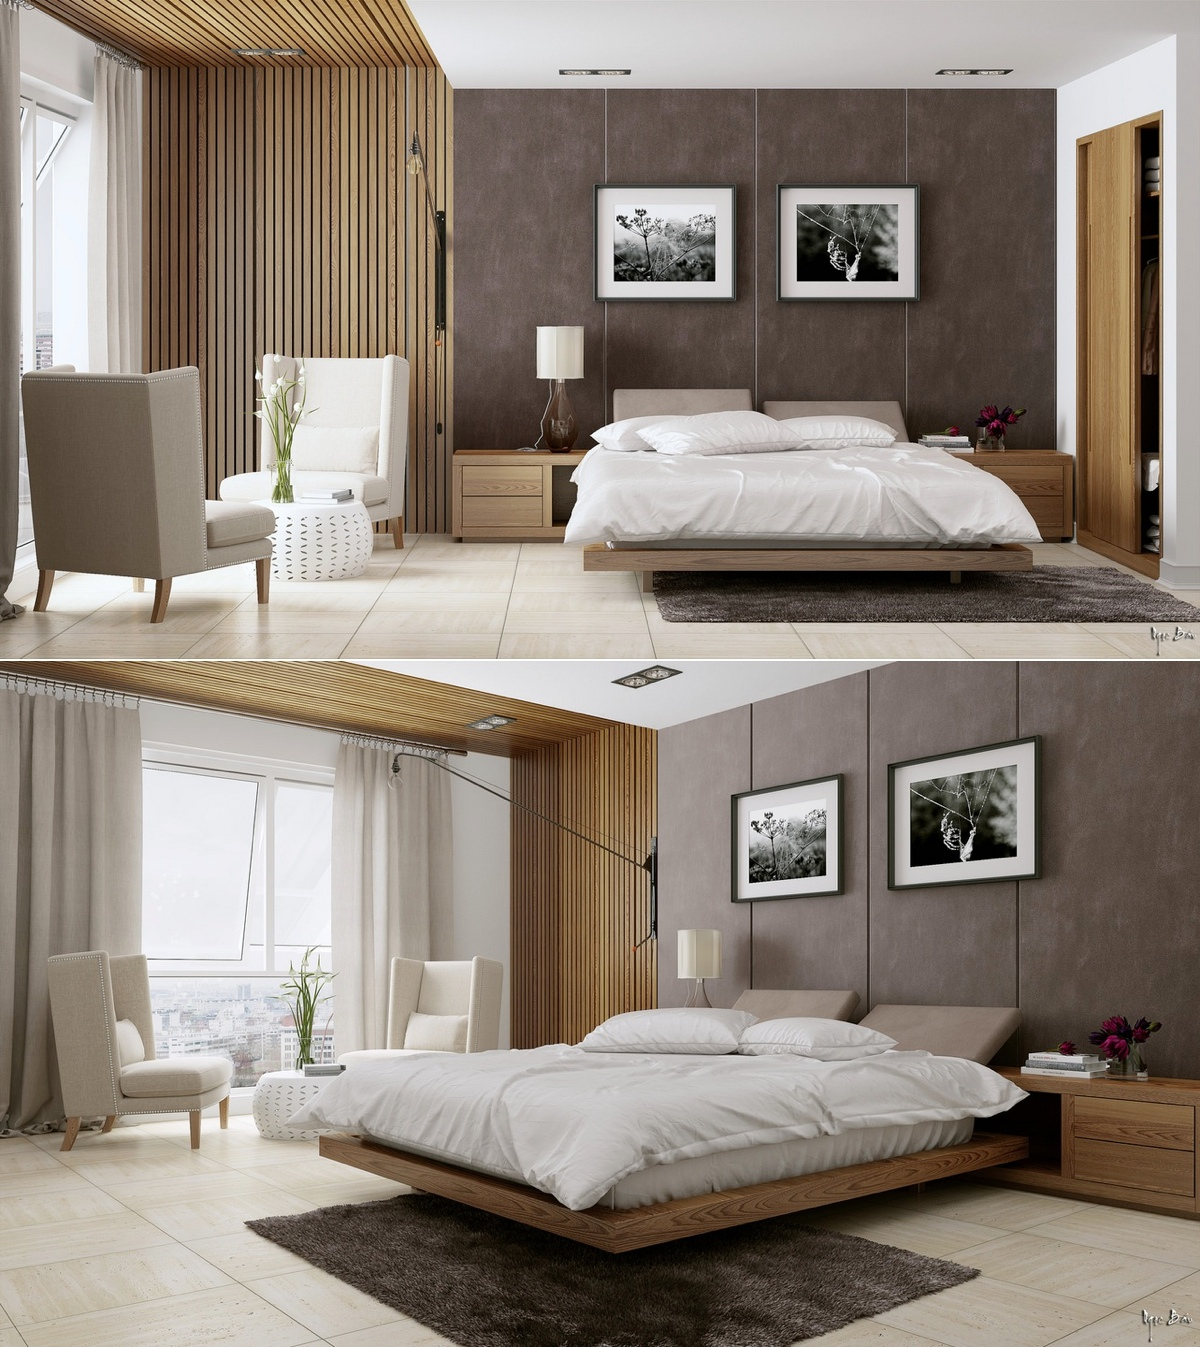 Interior Design Ideas Grey Bedroom Bedroom Apartment Decorating Ideas Interior Design Bedroom Layout Bedroom Ceiling Design Types: Stylish Bedroom Designs With Beautiful Creative Details